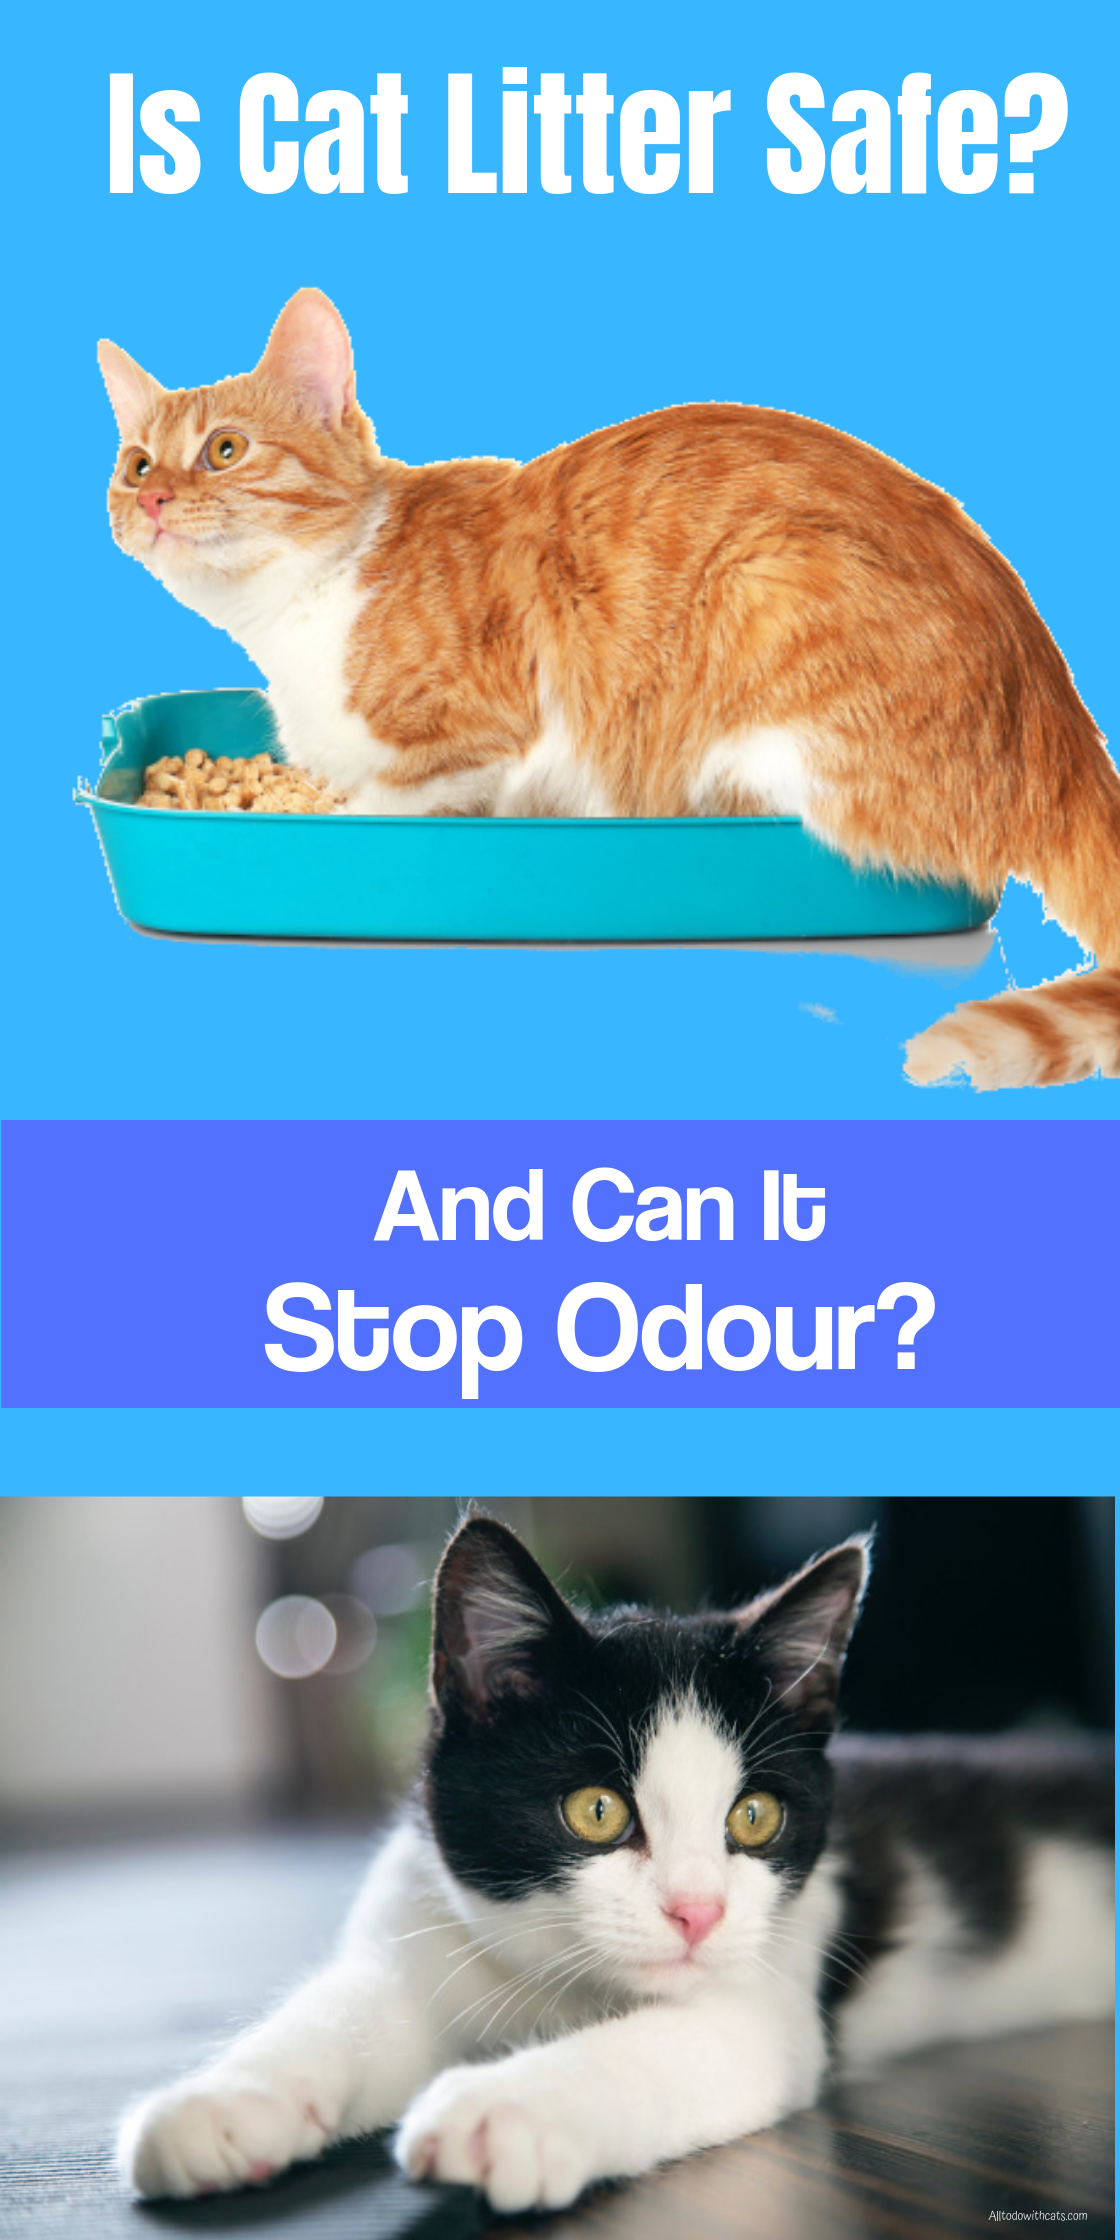 Is Clumping Cat Litter Safe And Does It Stop Odour All To Do With Cats Clumping Cat Litter Best Clumping Cat Litter Cat Litter